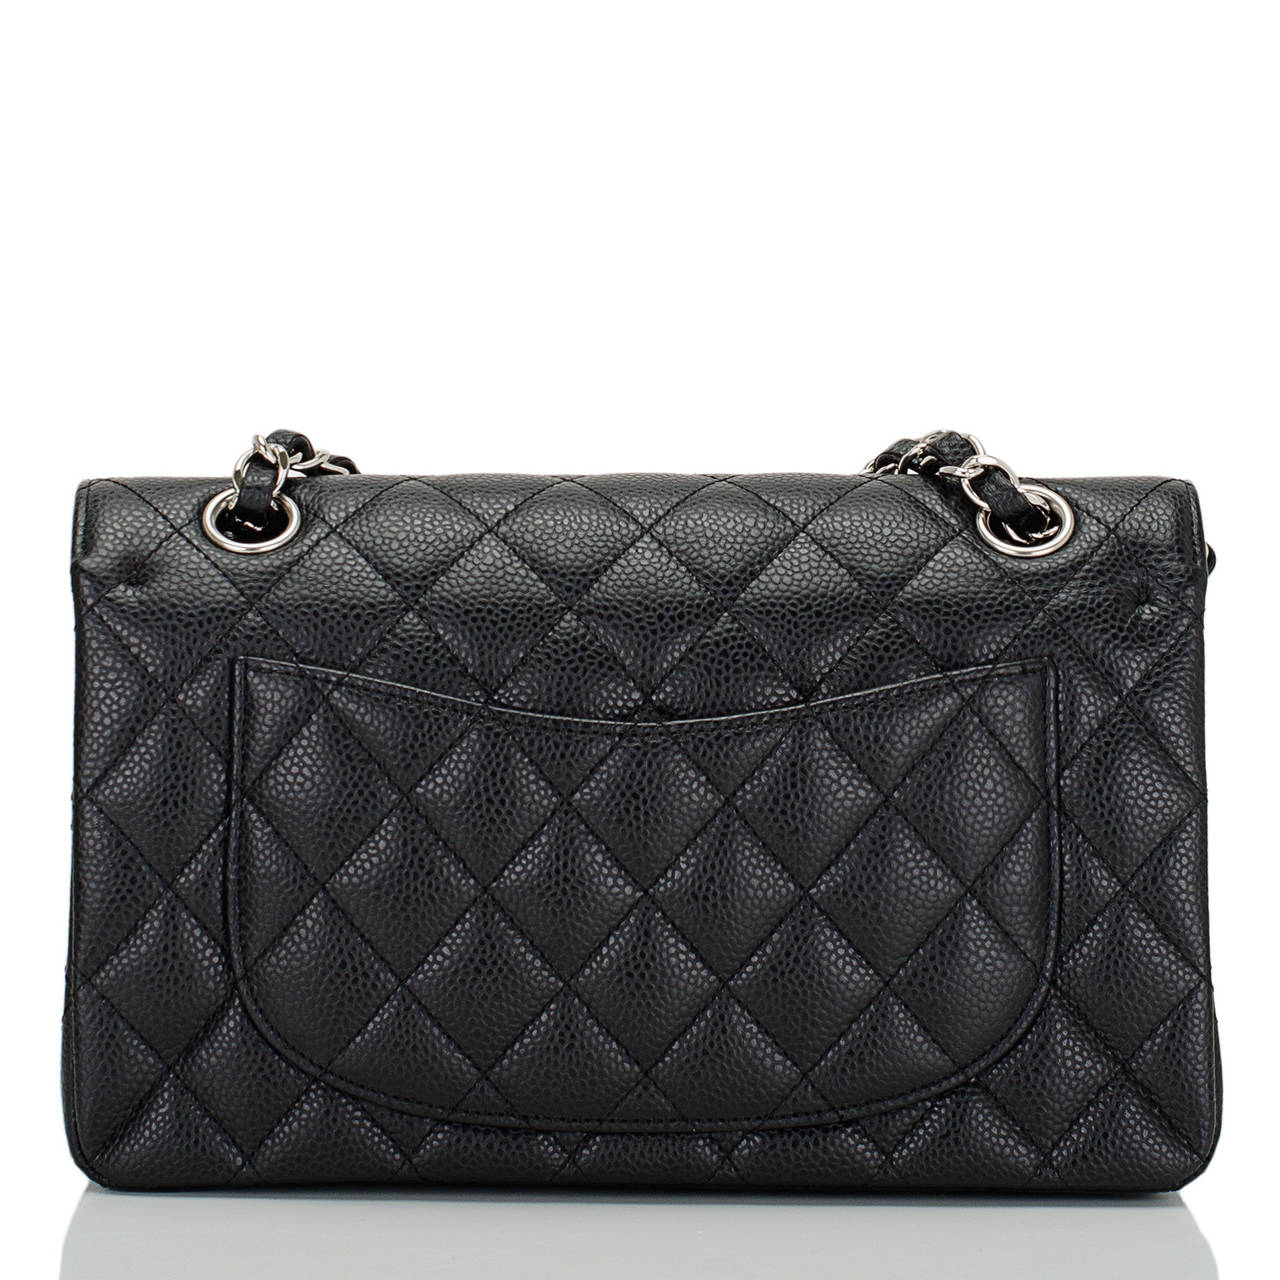 Chanel Black Quilted Caviar Small Classic Double Flap Bag In Excellent Condition For Sale In New York, NY